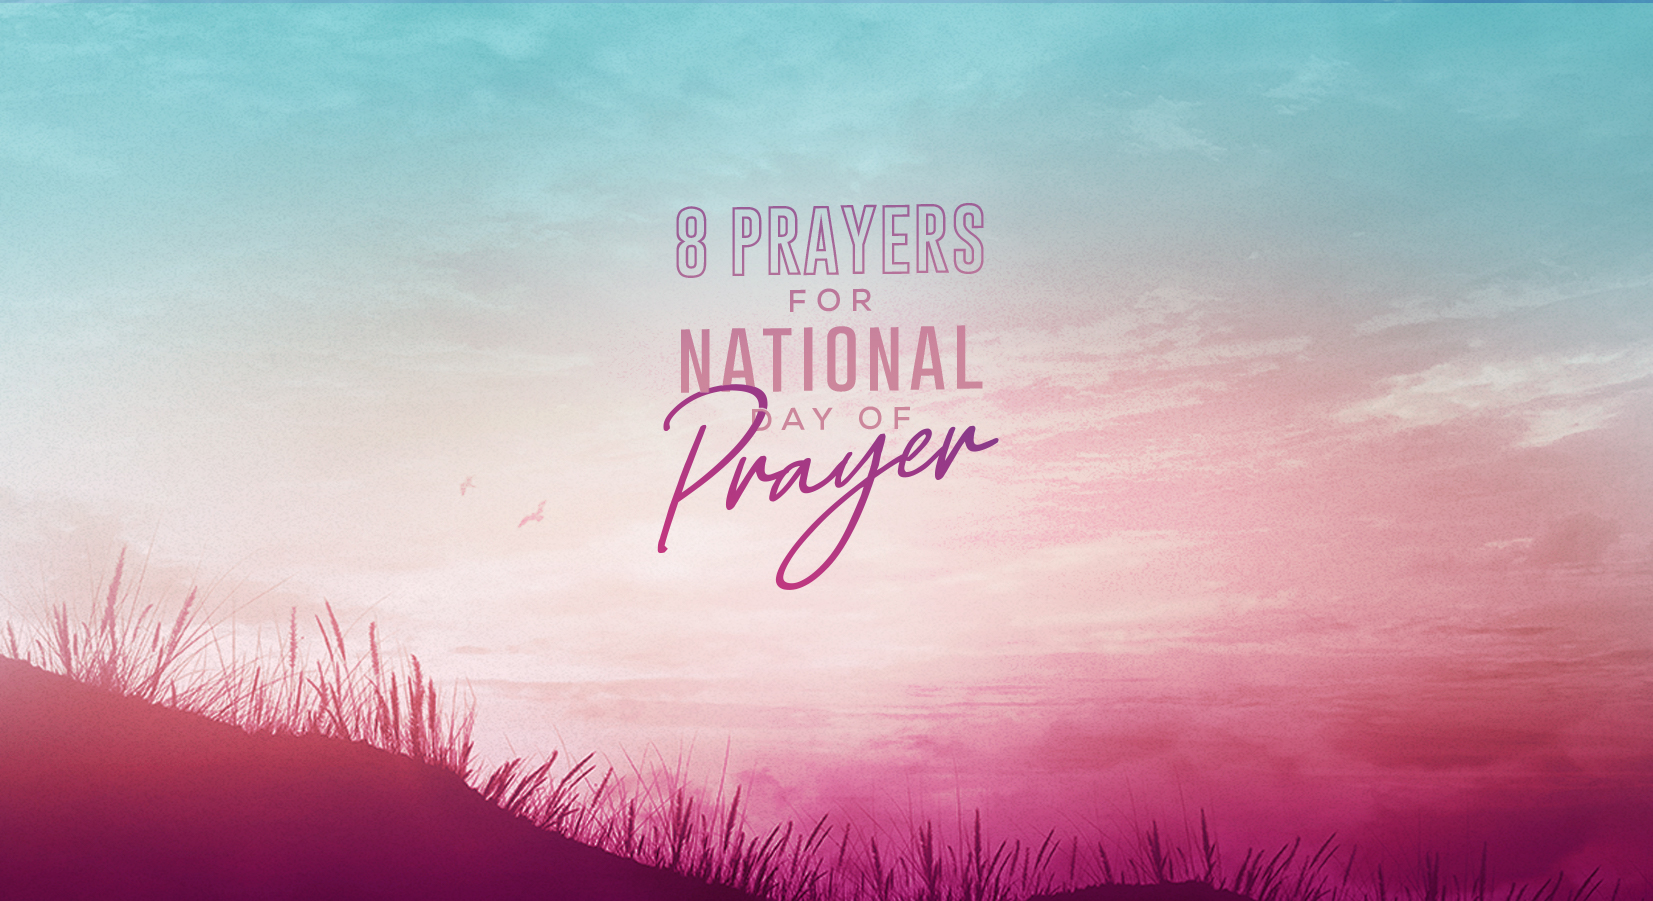 8 Prayers for National Day of Prayer